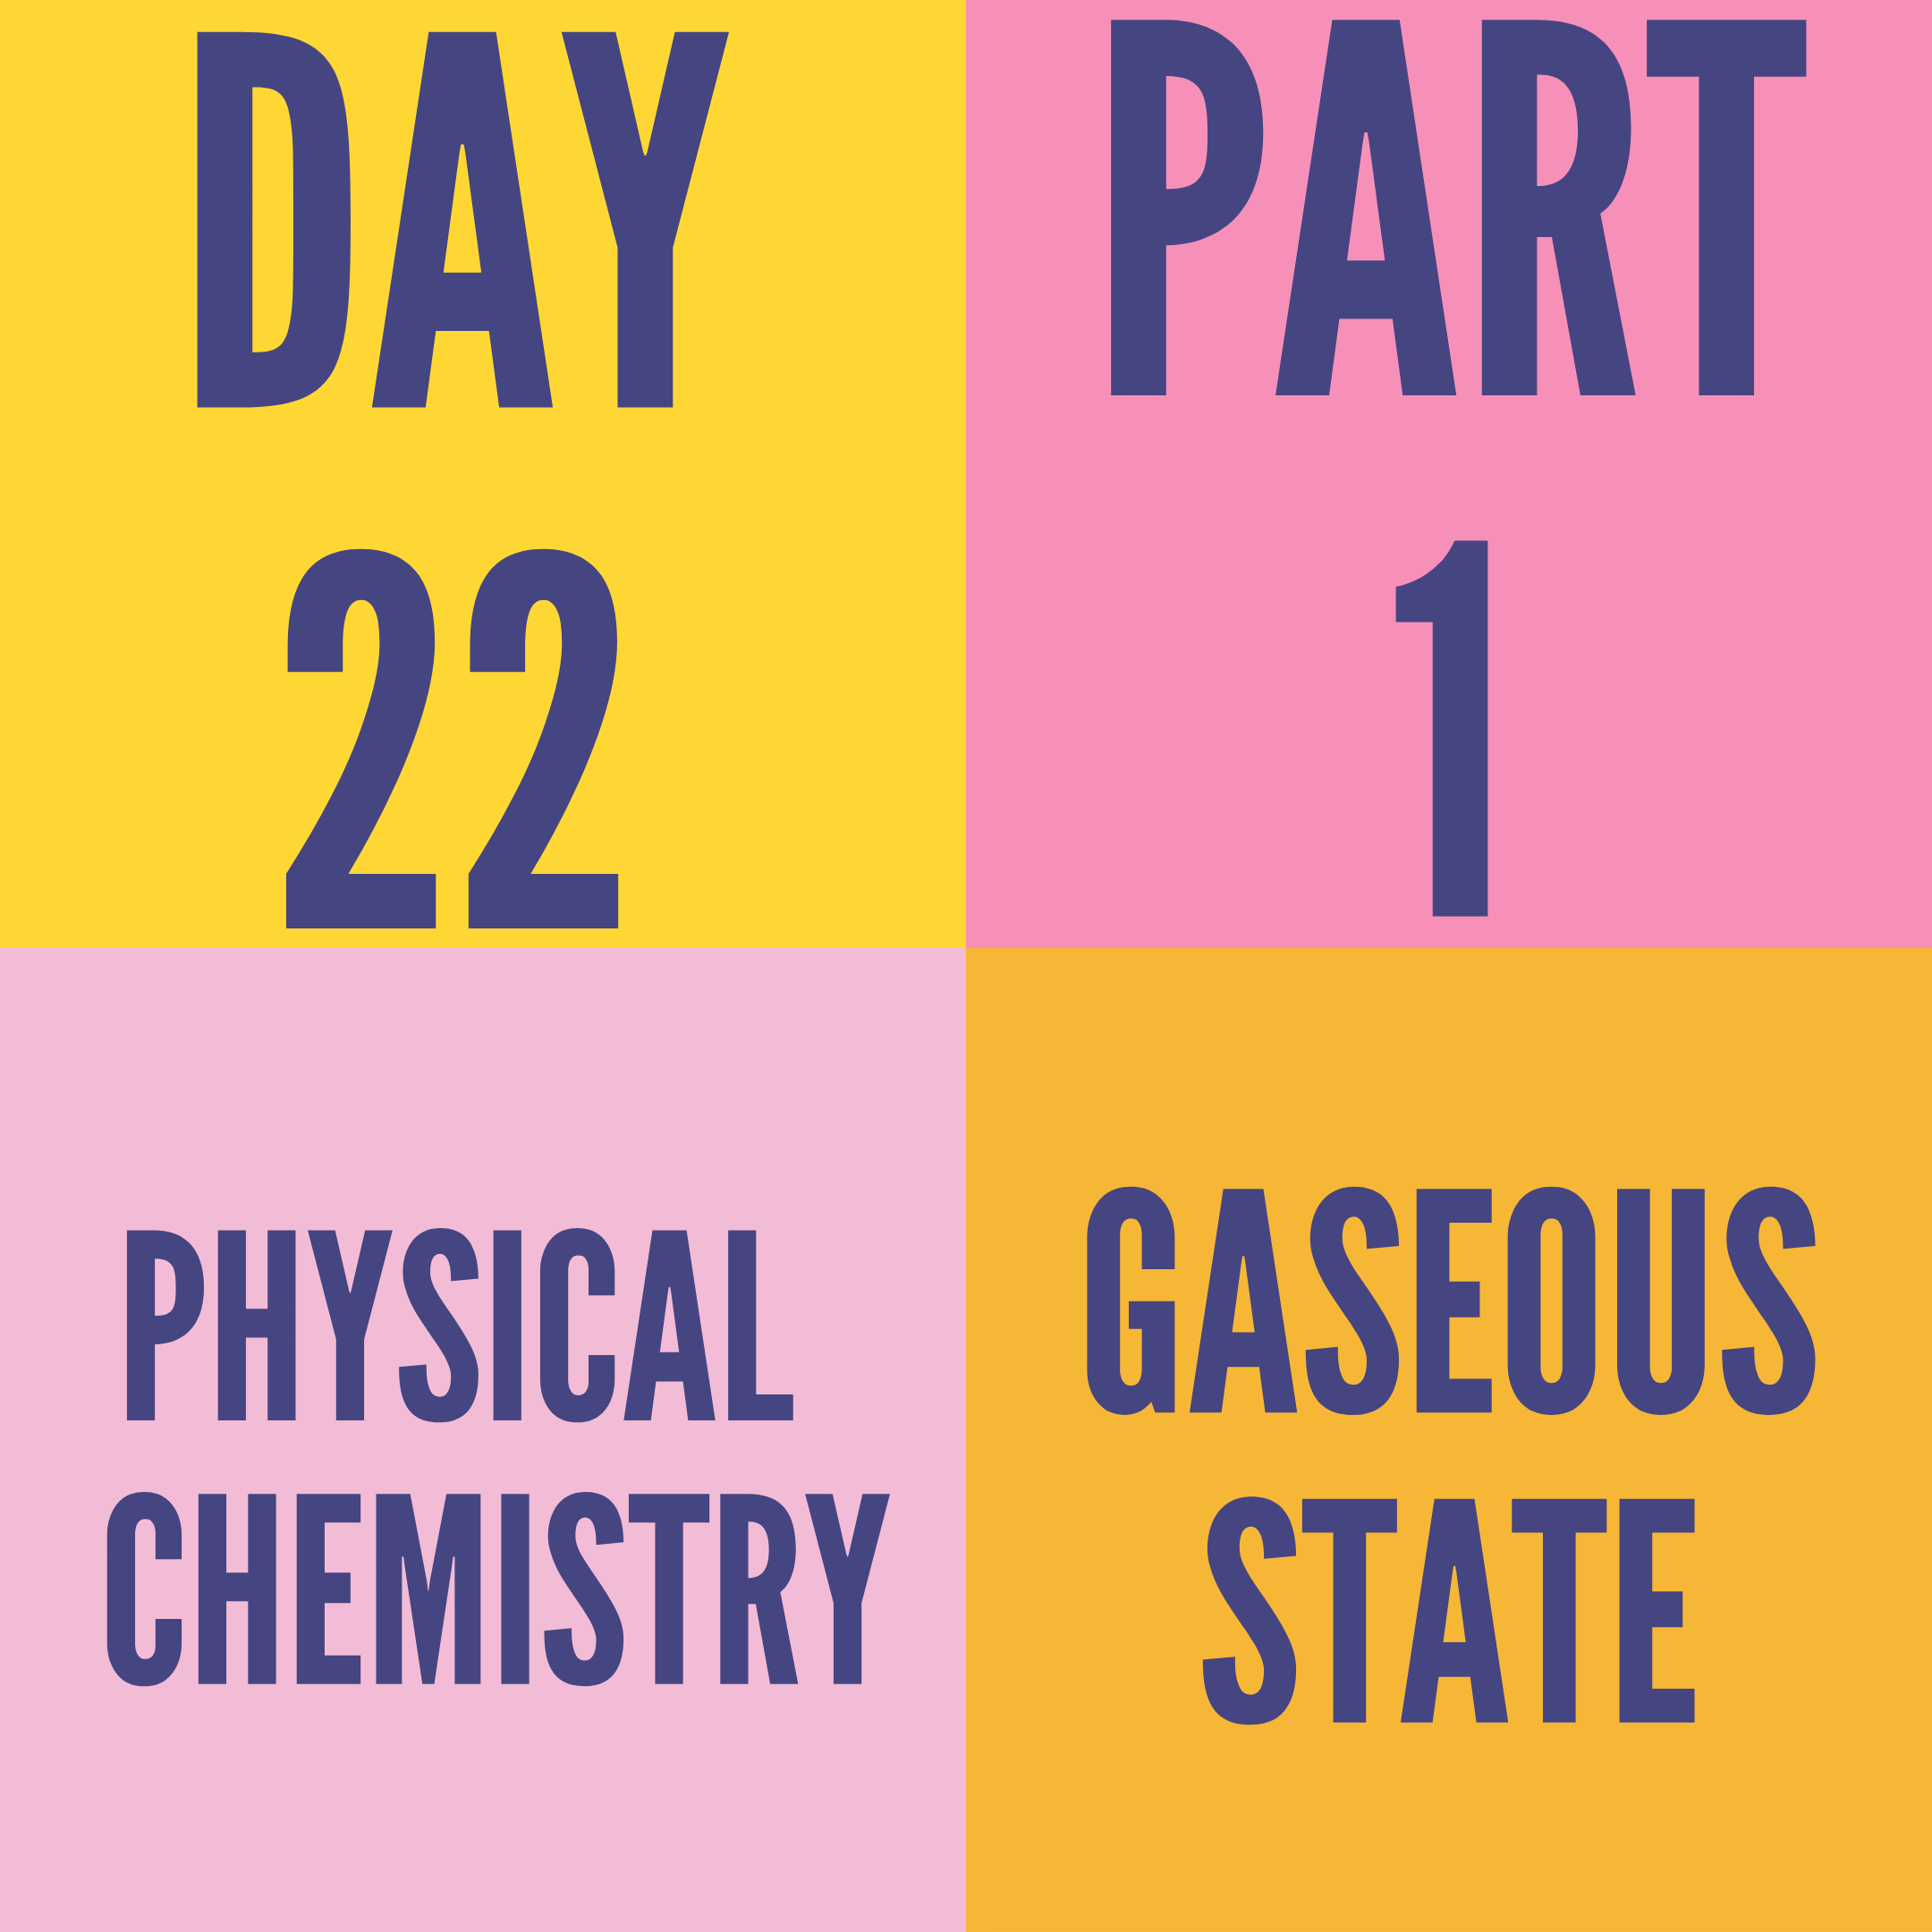 DAY-22 PART-1 GASEOUS STATE